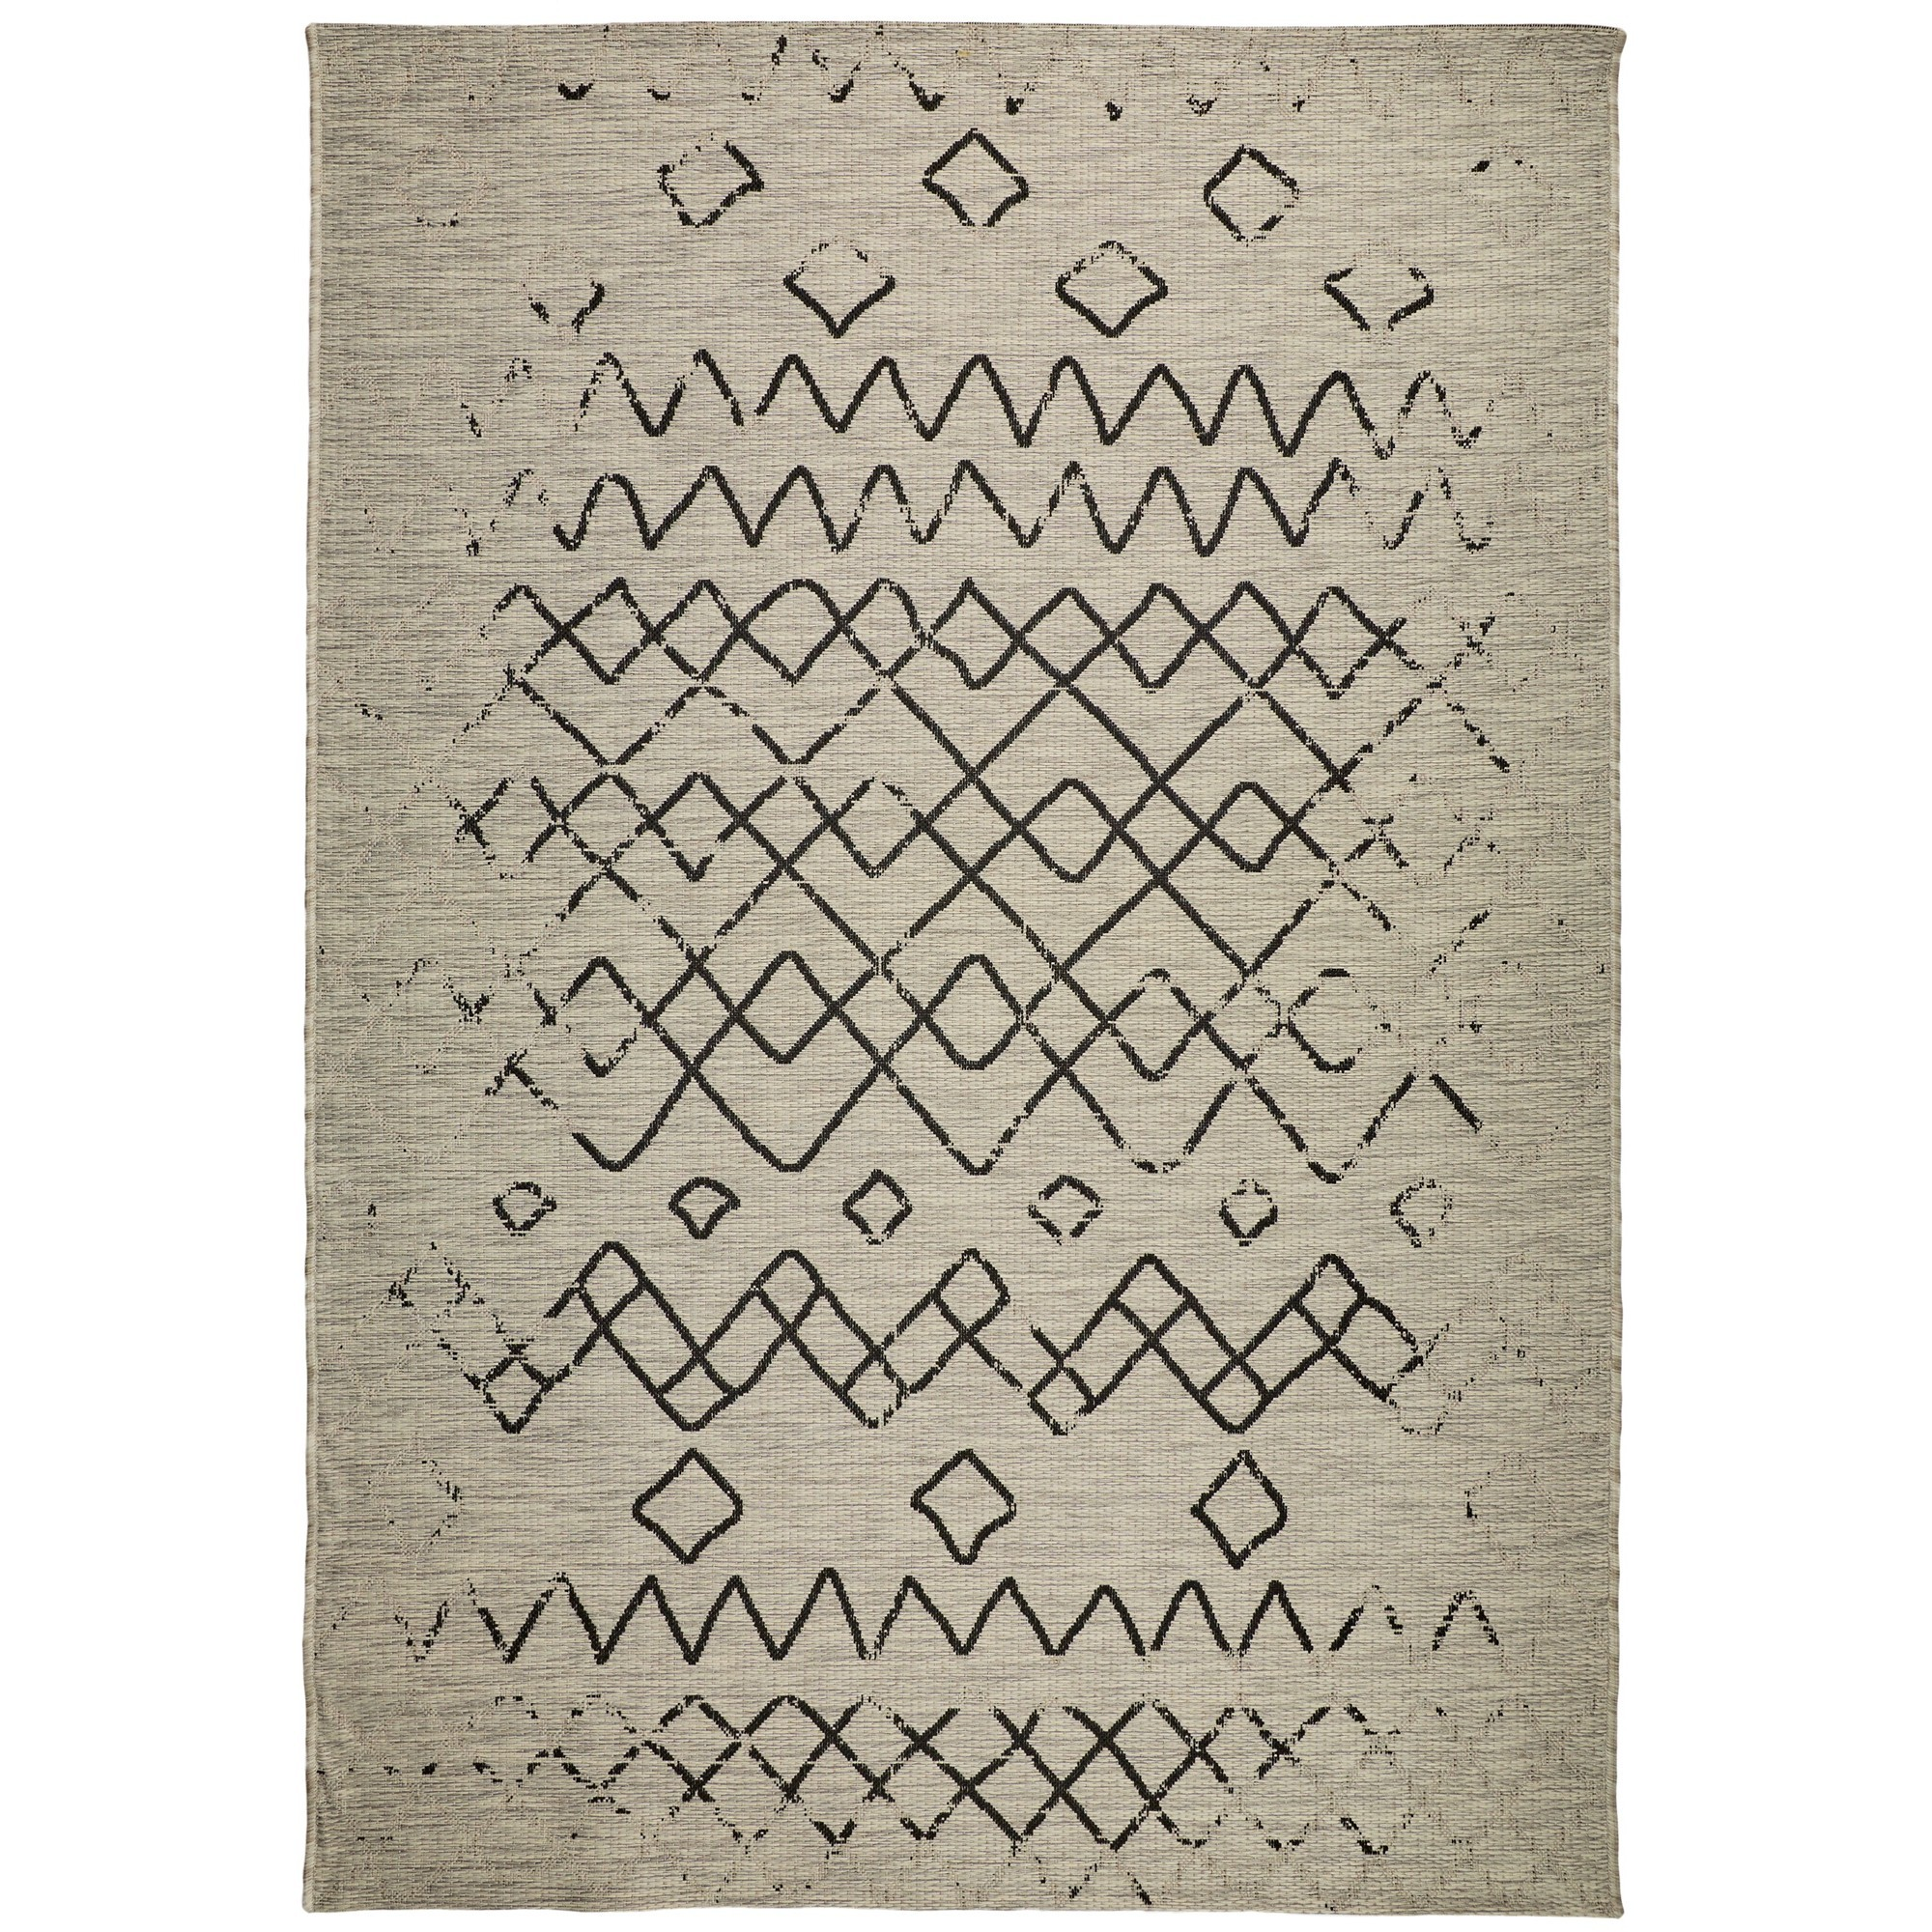 Magic No.304 Modern Tribal Indoor / Outdoor Rug, 330x240cm, Silver